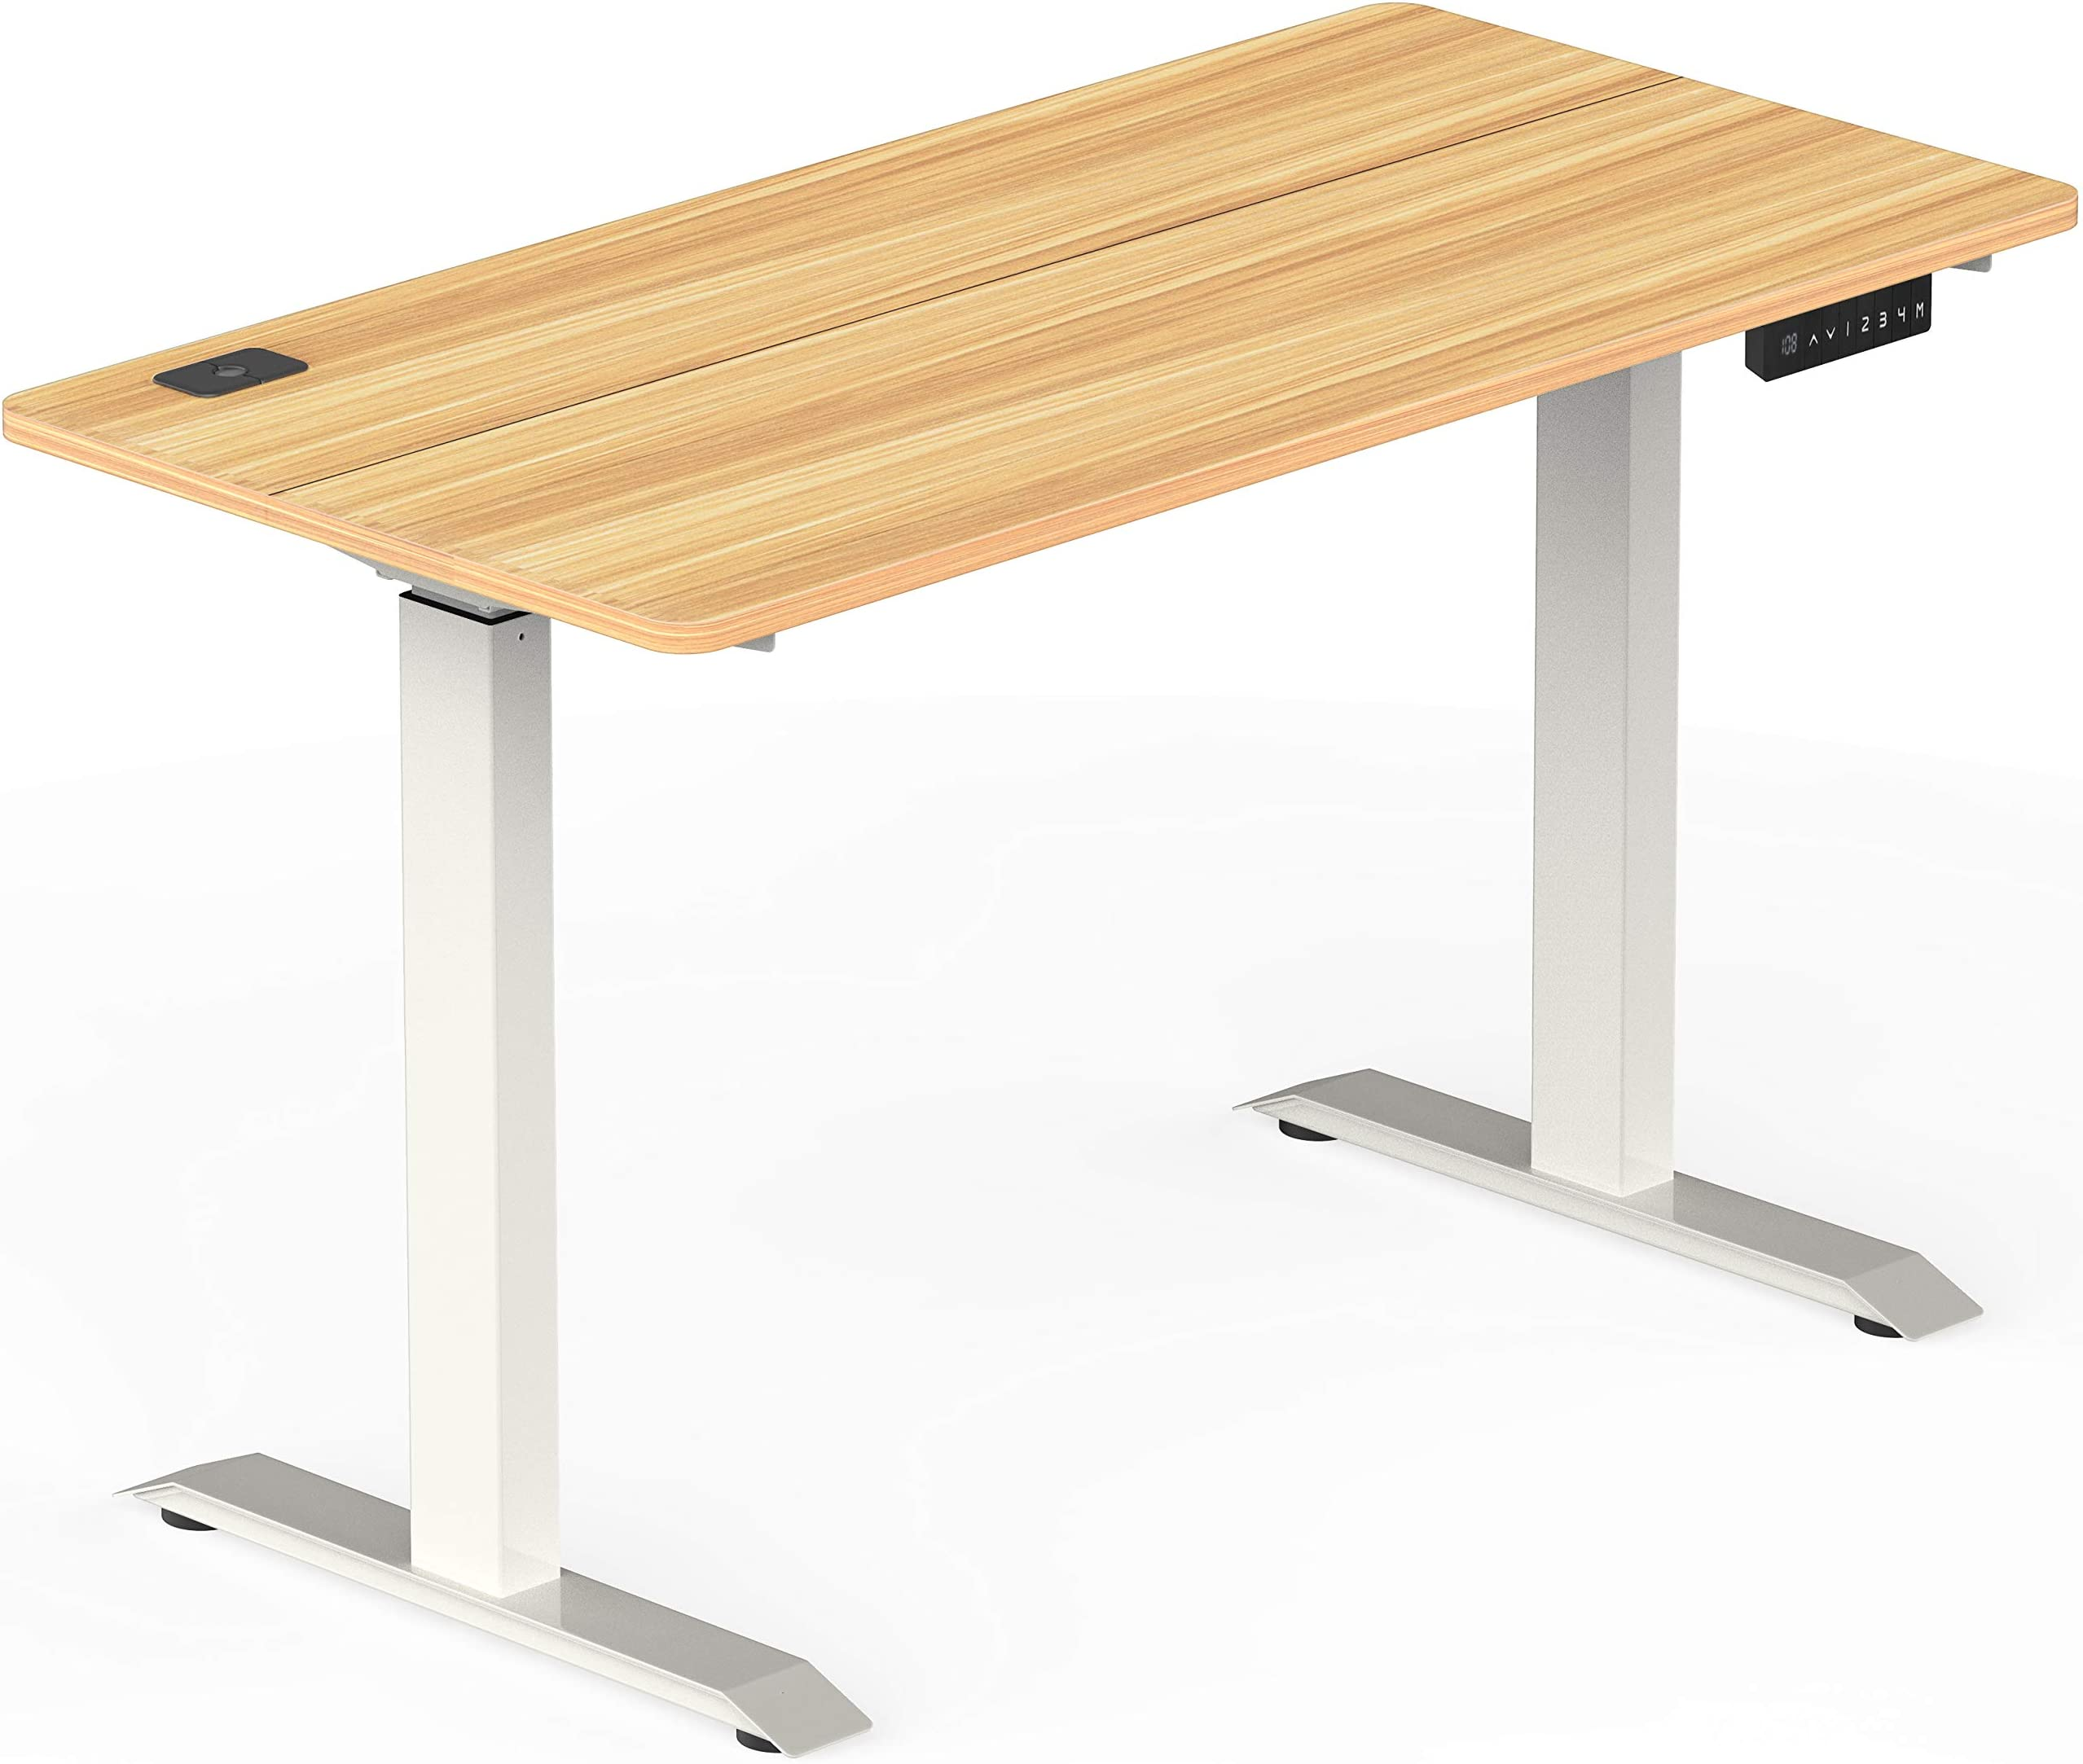 SHW Standing Desk Electric Height Adjustable Computer Desk, 48 x 24 Inches, Light Cherry